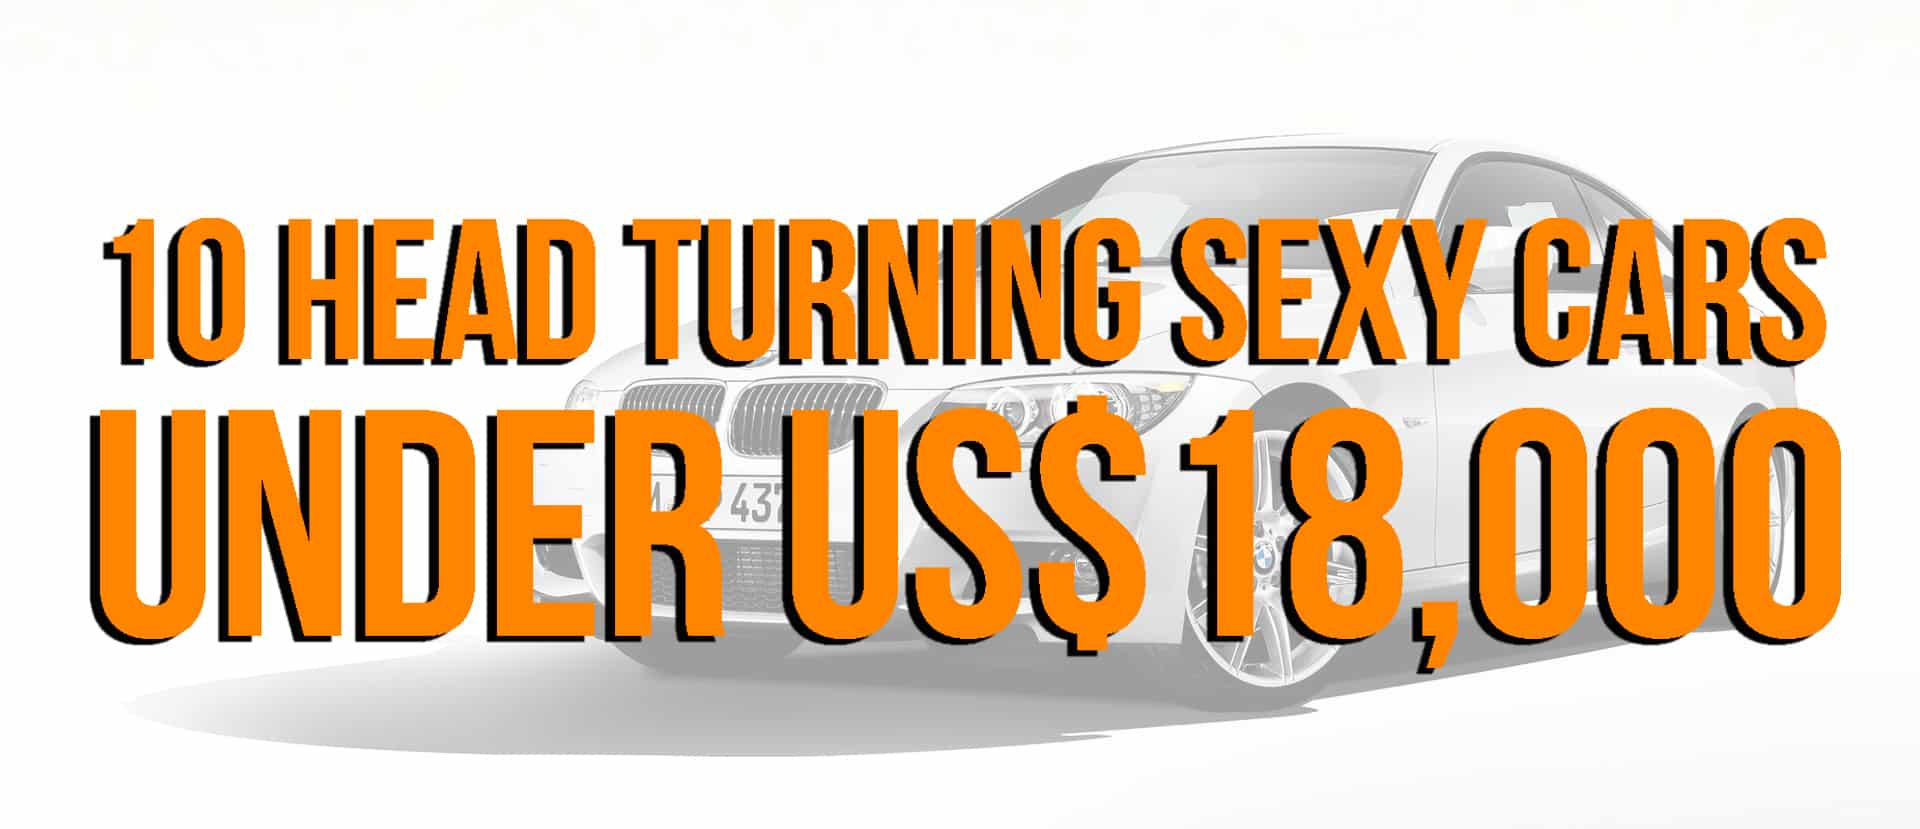 10 HEAD TURNING SEXY CARS UNDER 18K / THE GUY BLOG